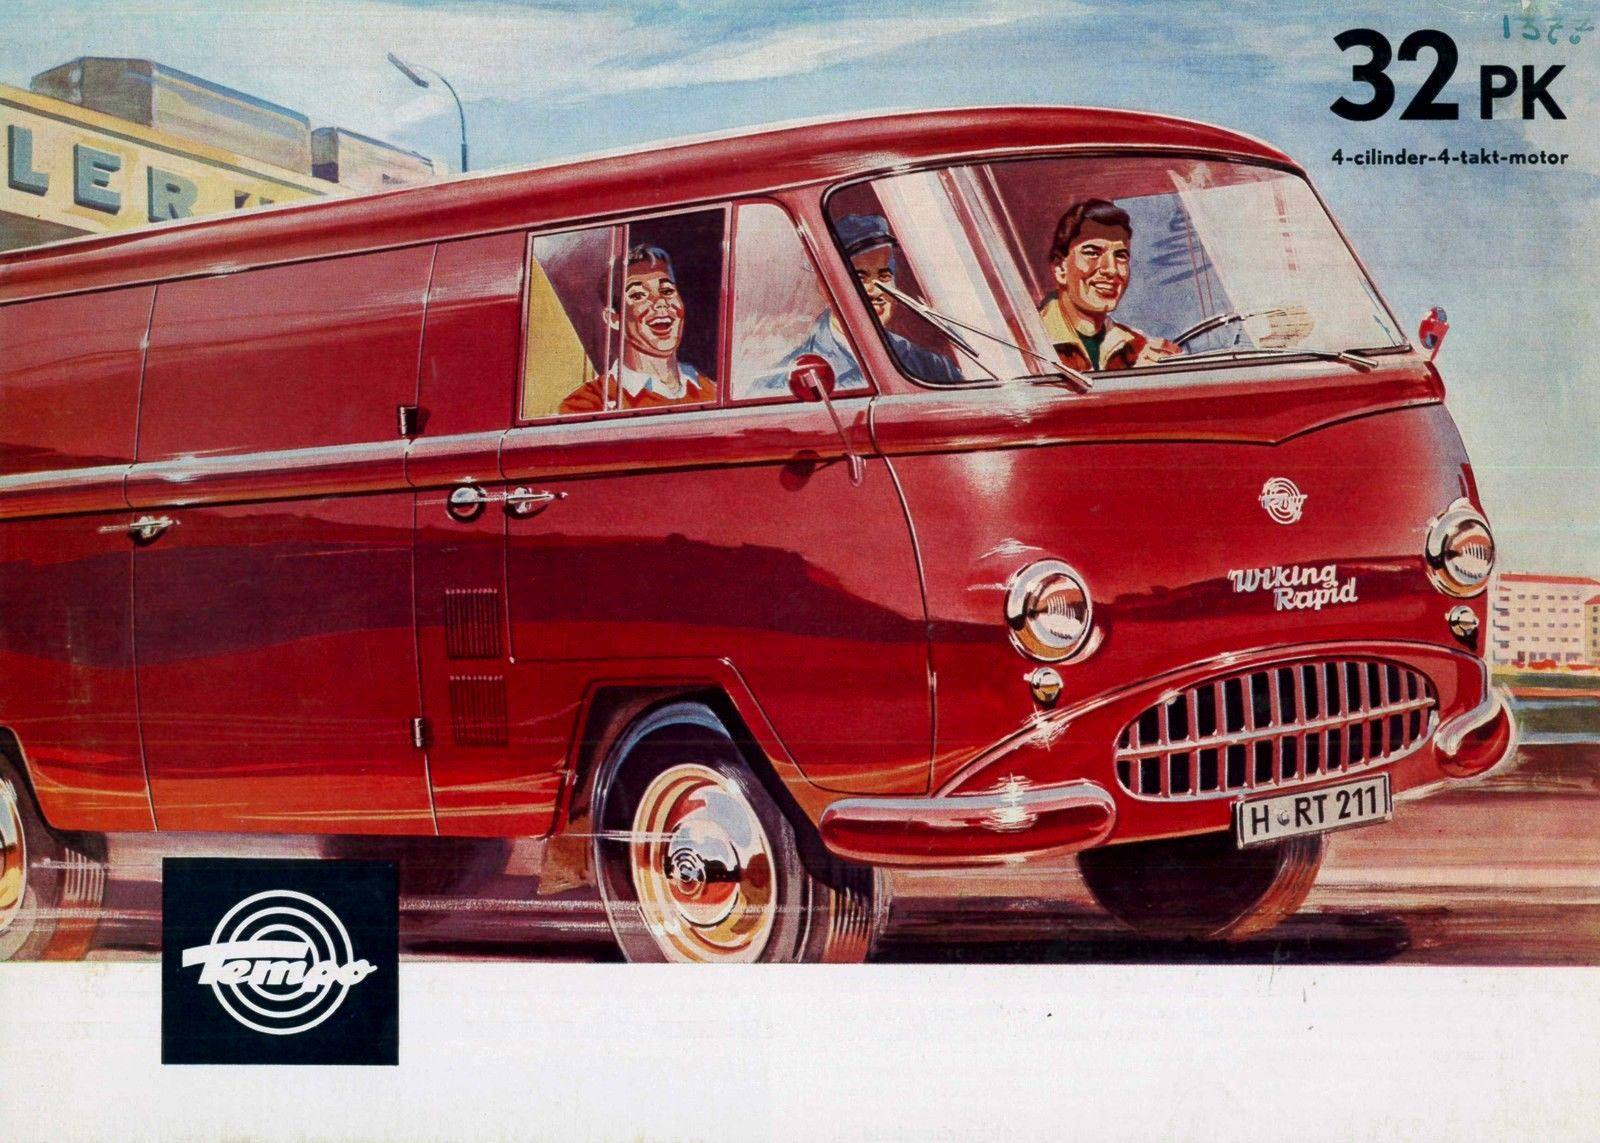 1959-Tempo-Wiking-Rapid